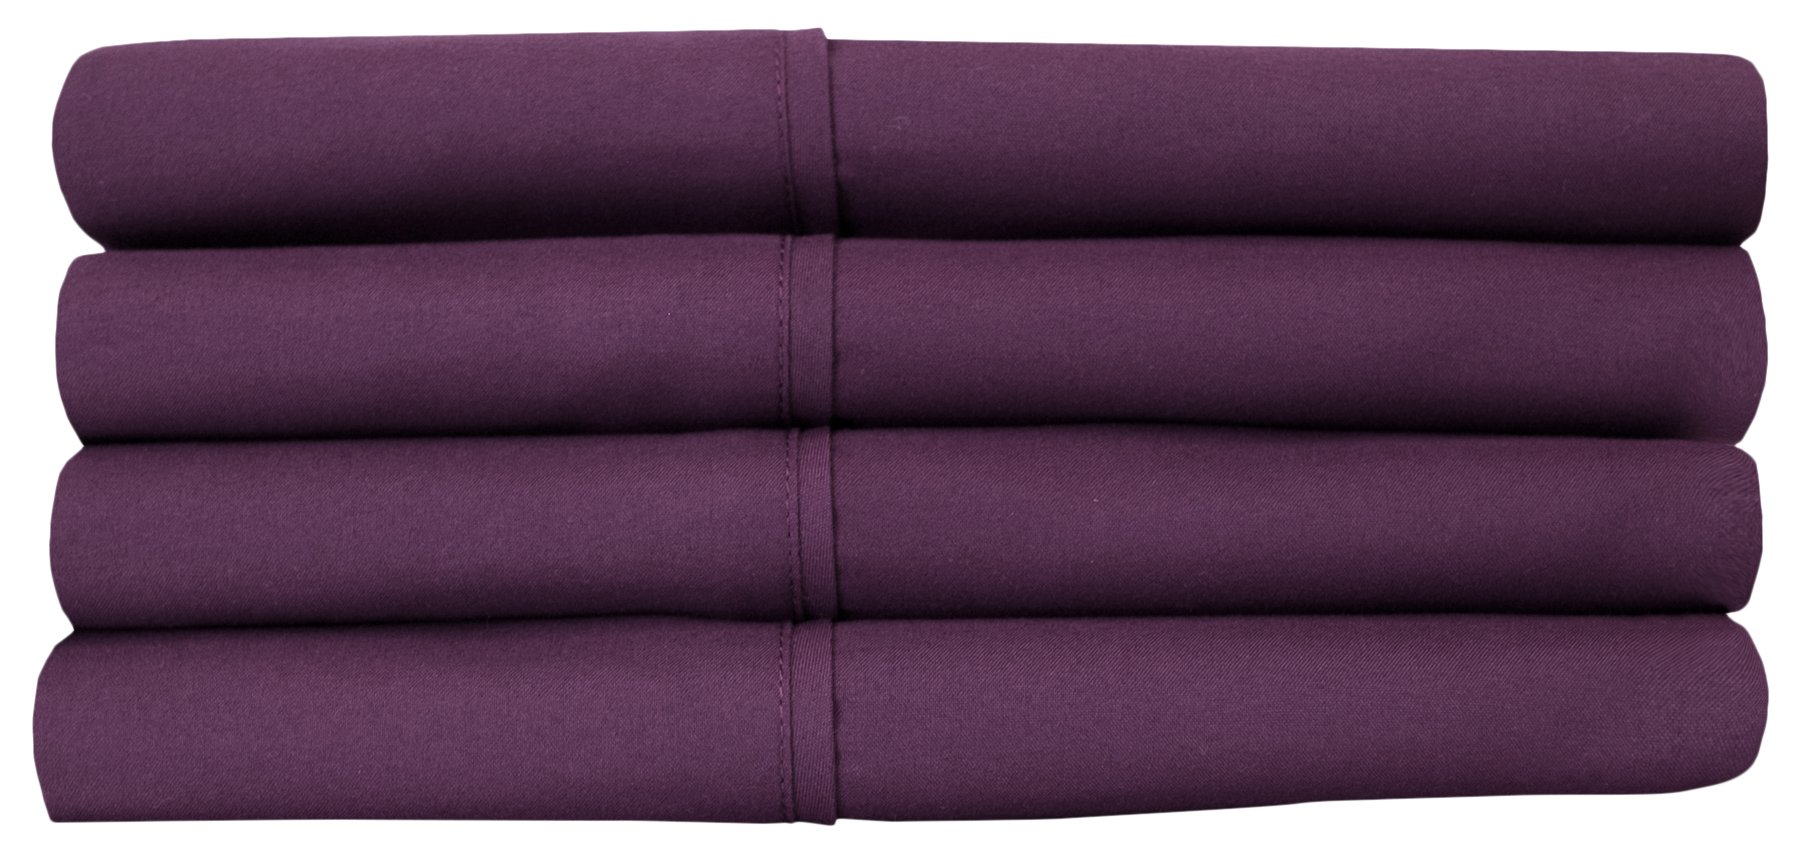 Sweet Home Collection Quality Deep Pocket Bed Sheet Set-2 Extra Pillow Cases, Great Value, Twin X-Large, Purple, 4 Piece